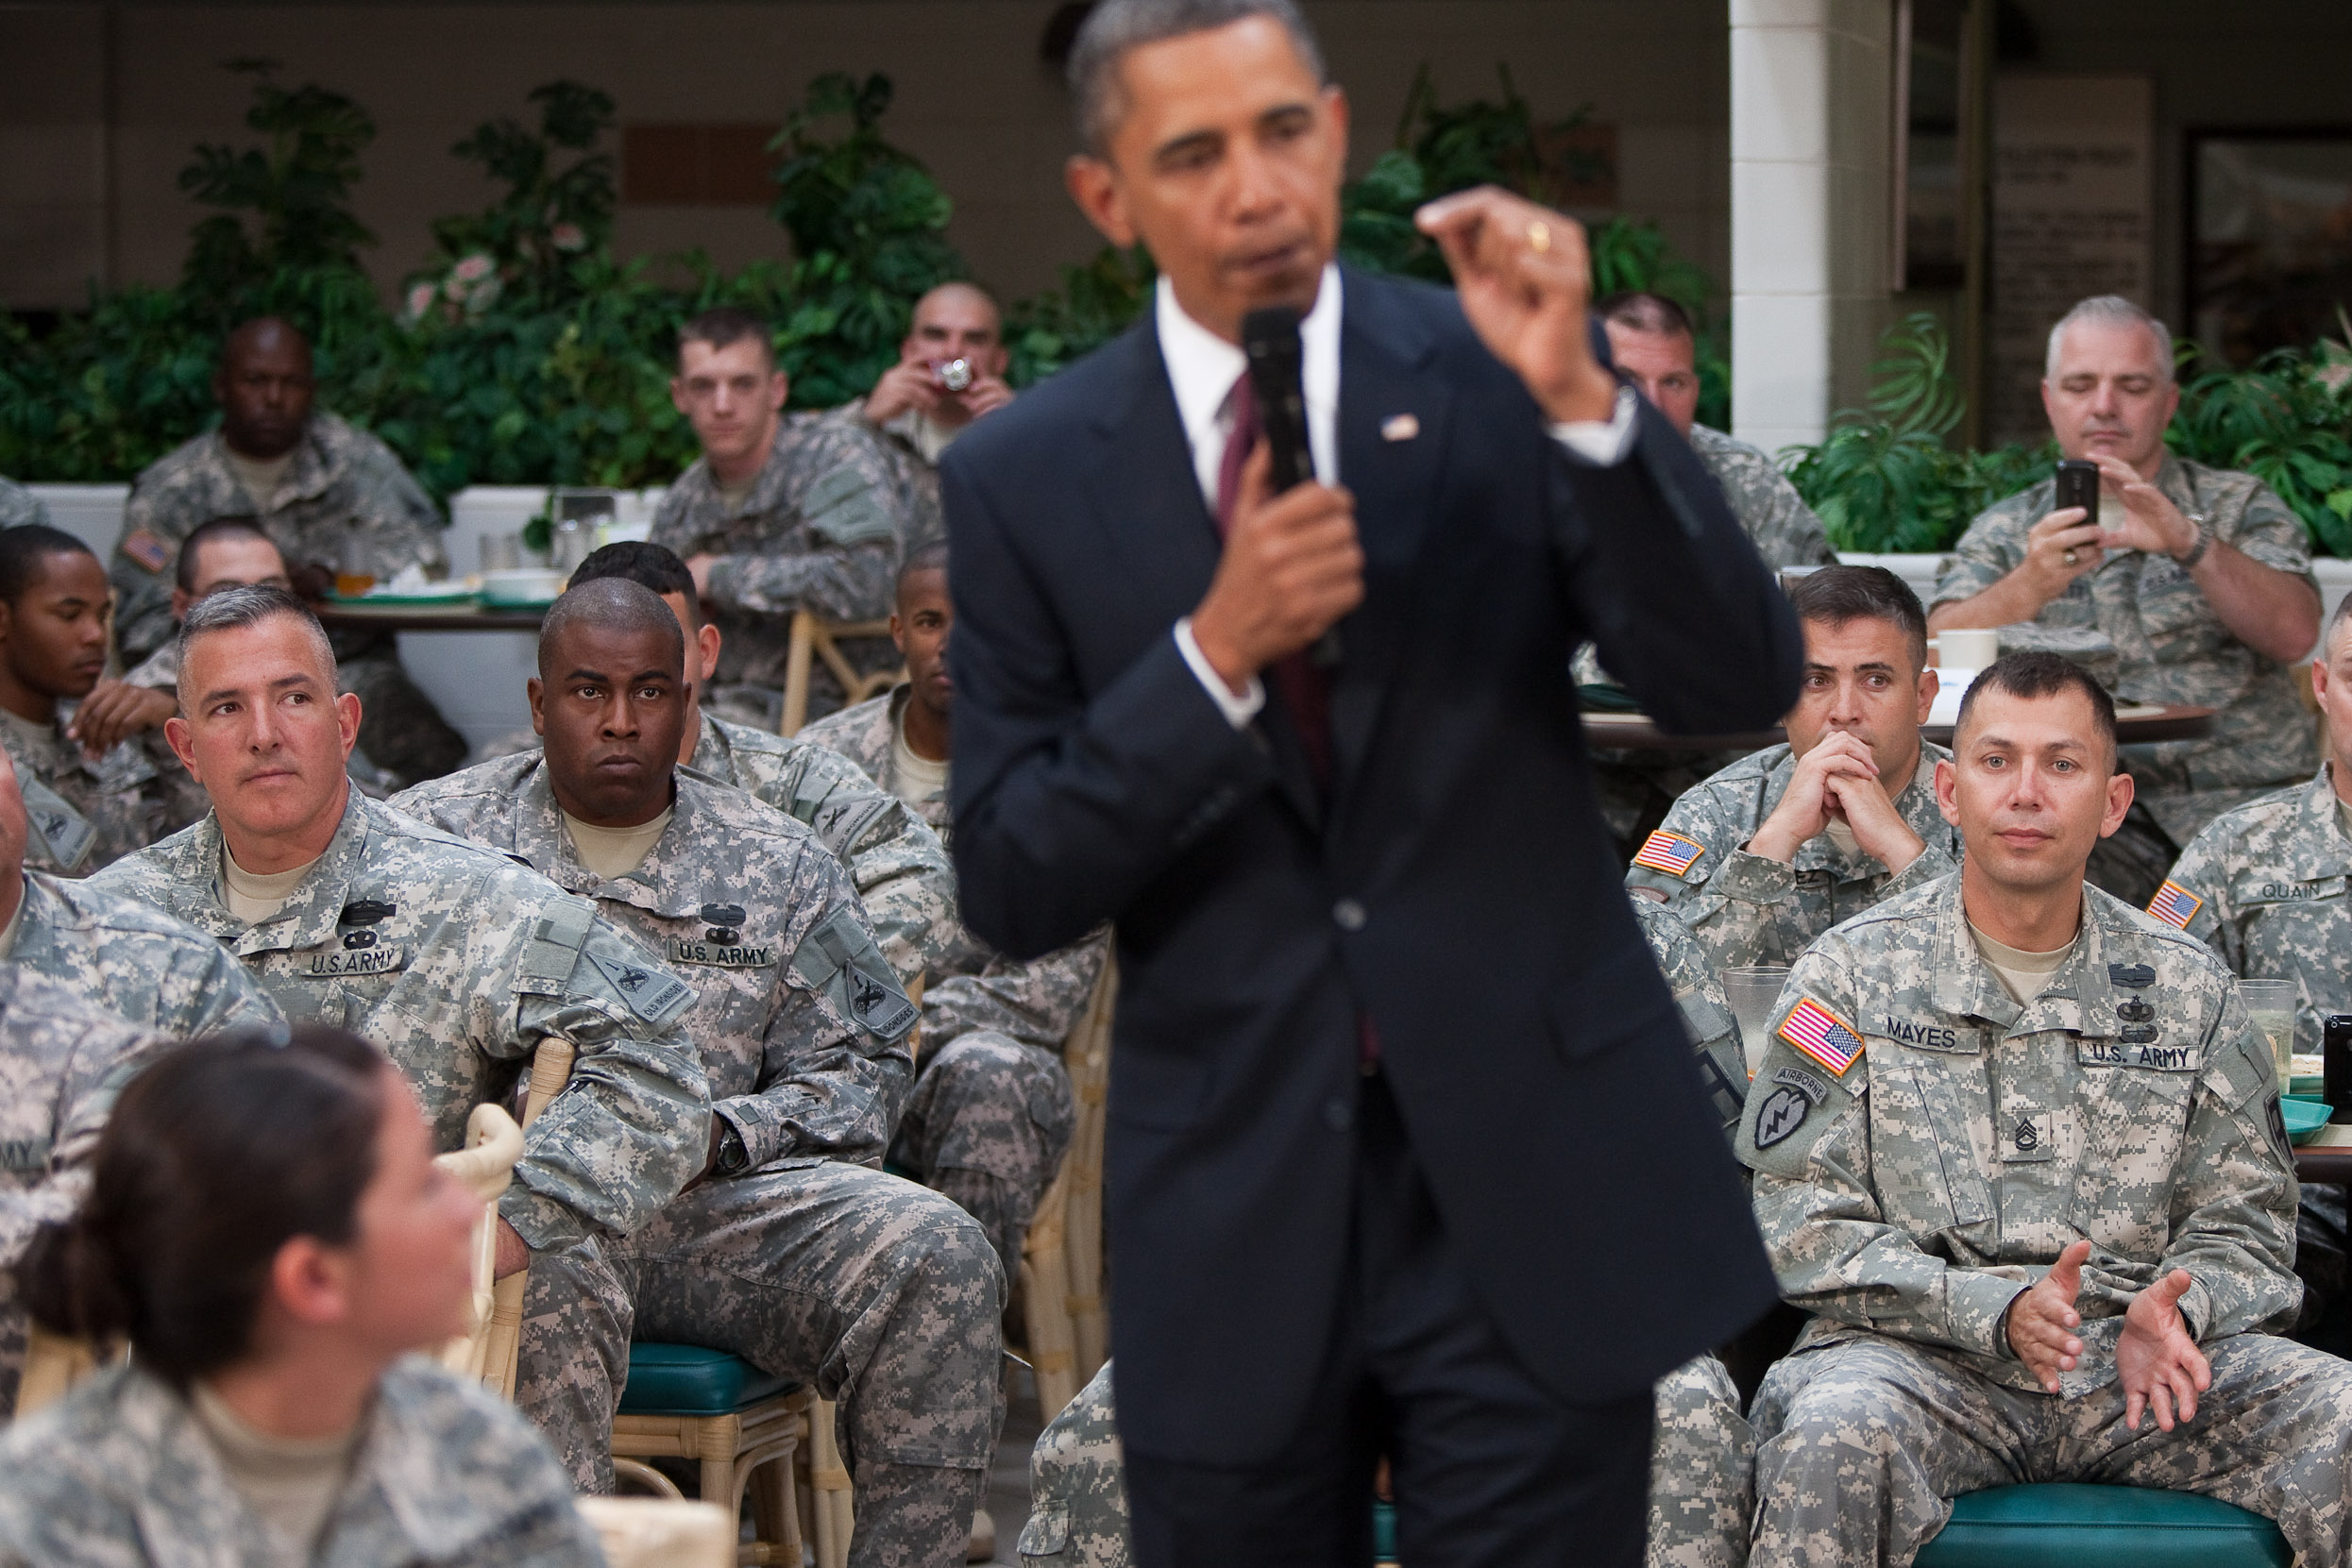 President Barack Obama Speaks to Members of the Military at Fort Bliss in El Paso